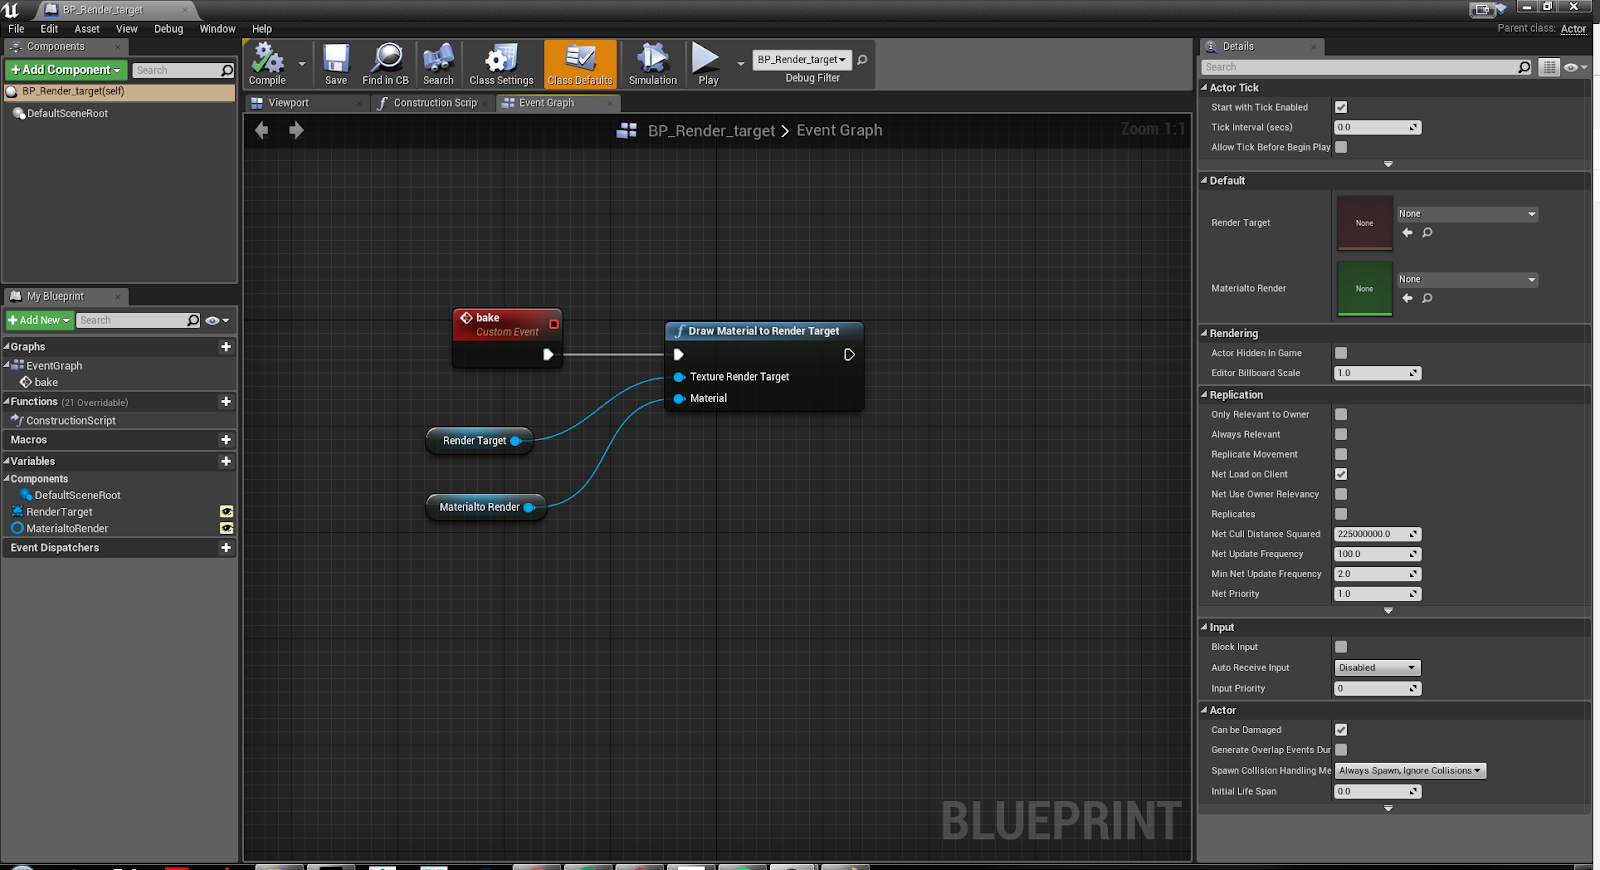 Pulsing UE4 material and Material baking back into a texture